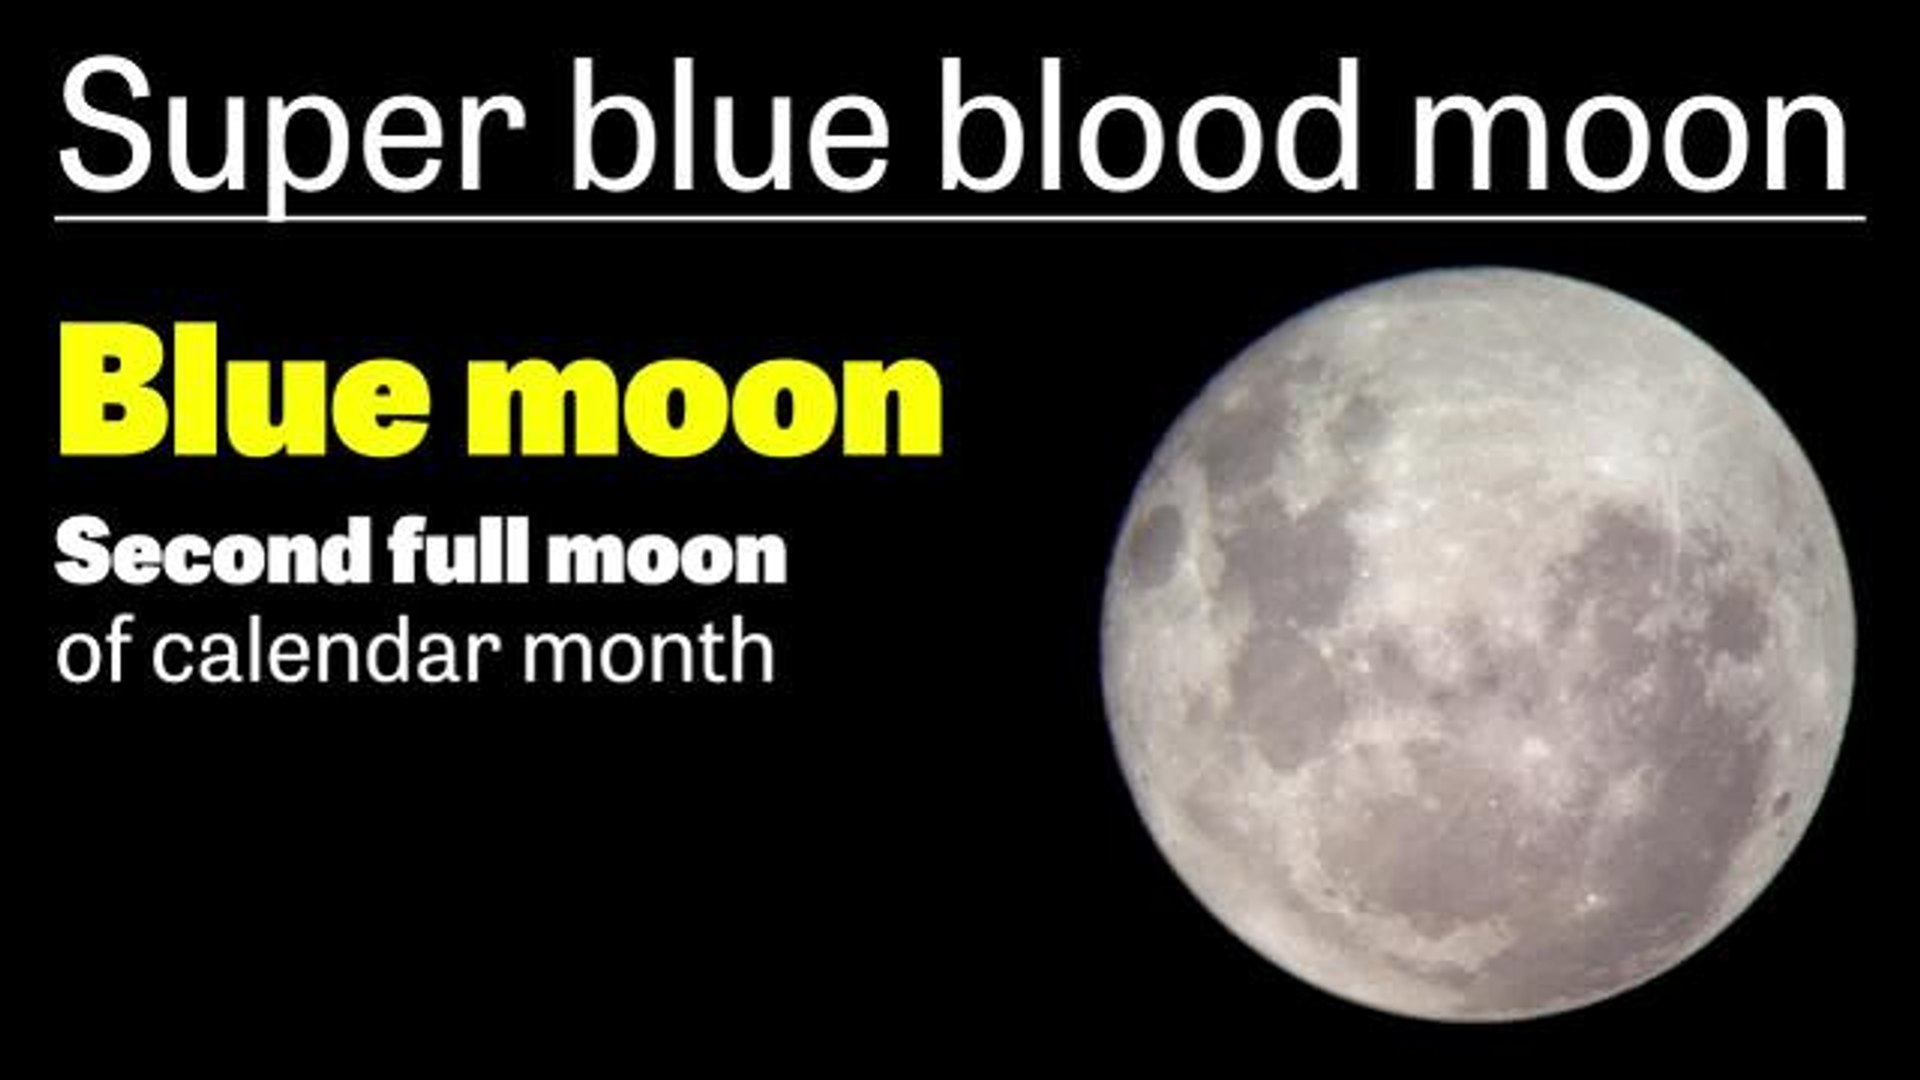 Blood Moon facts